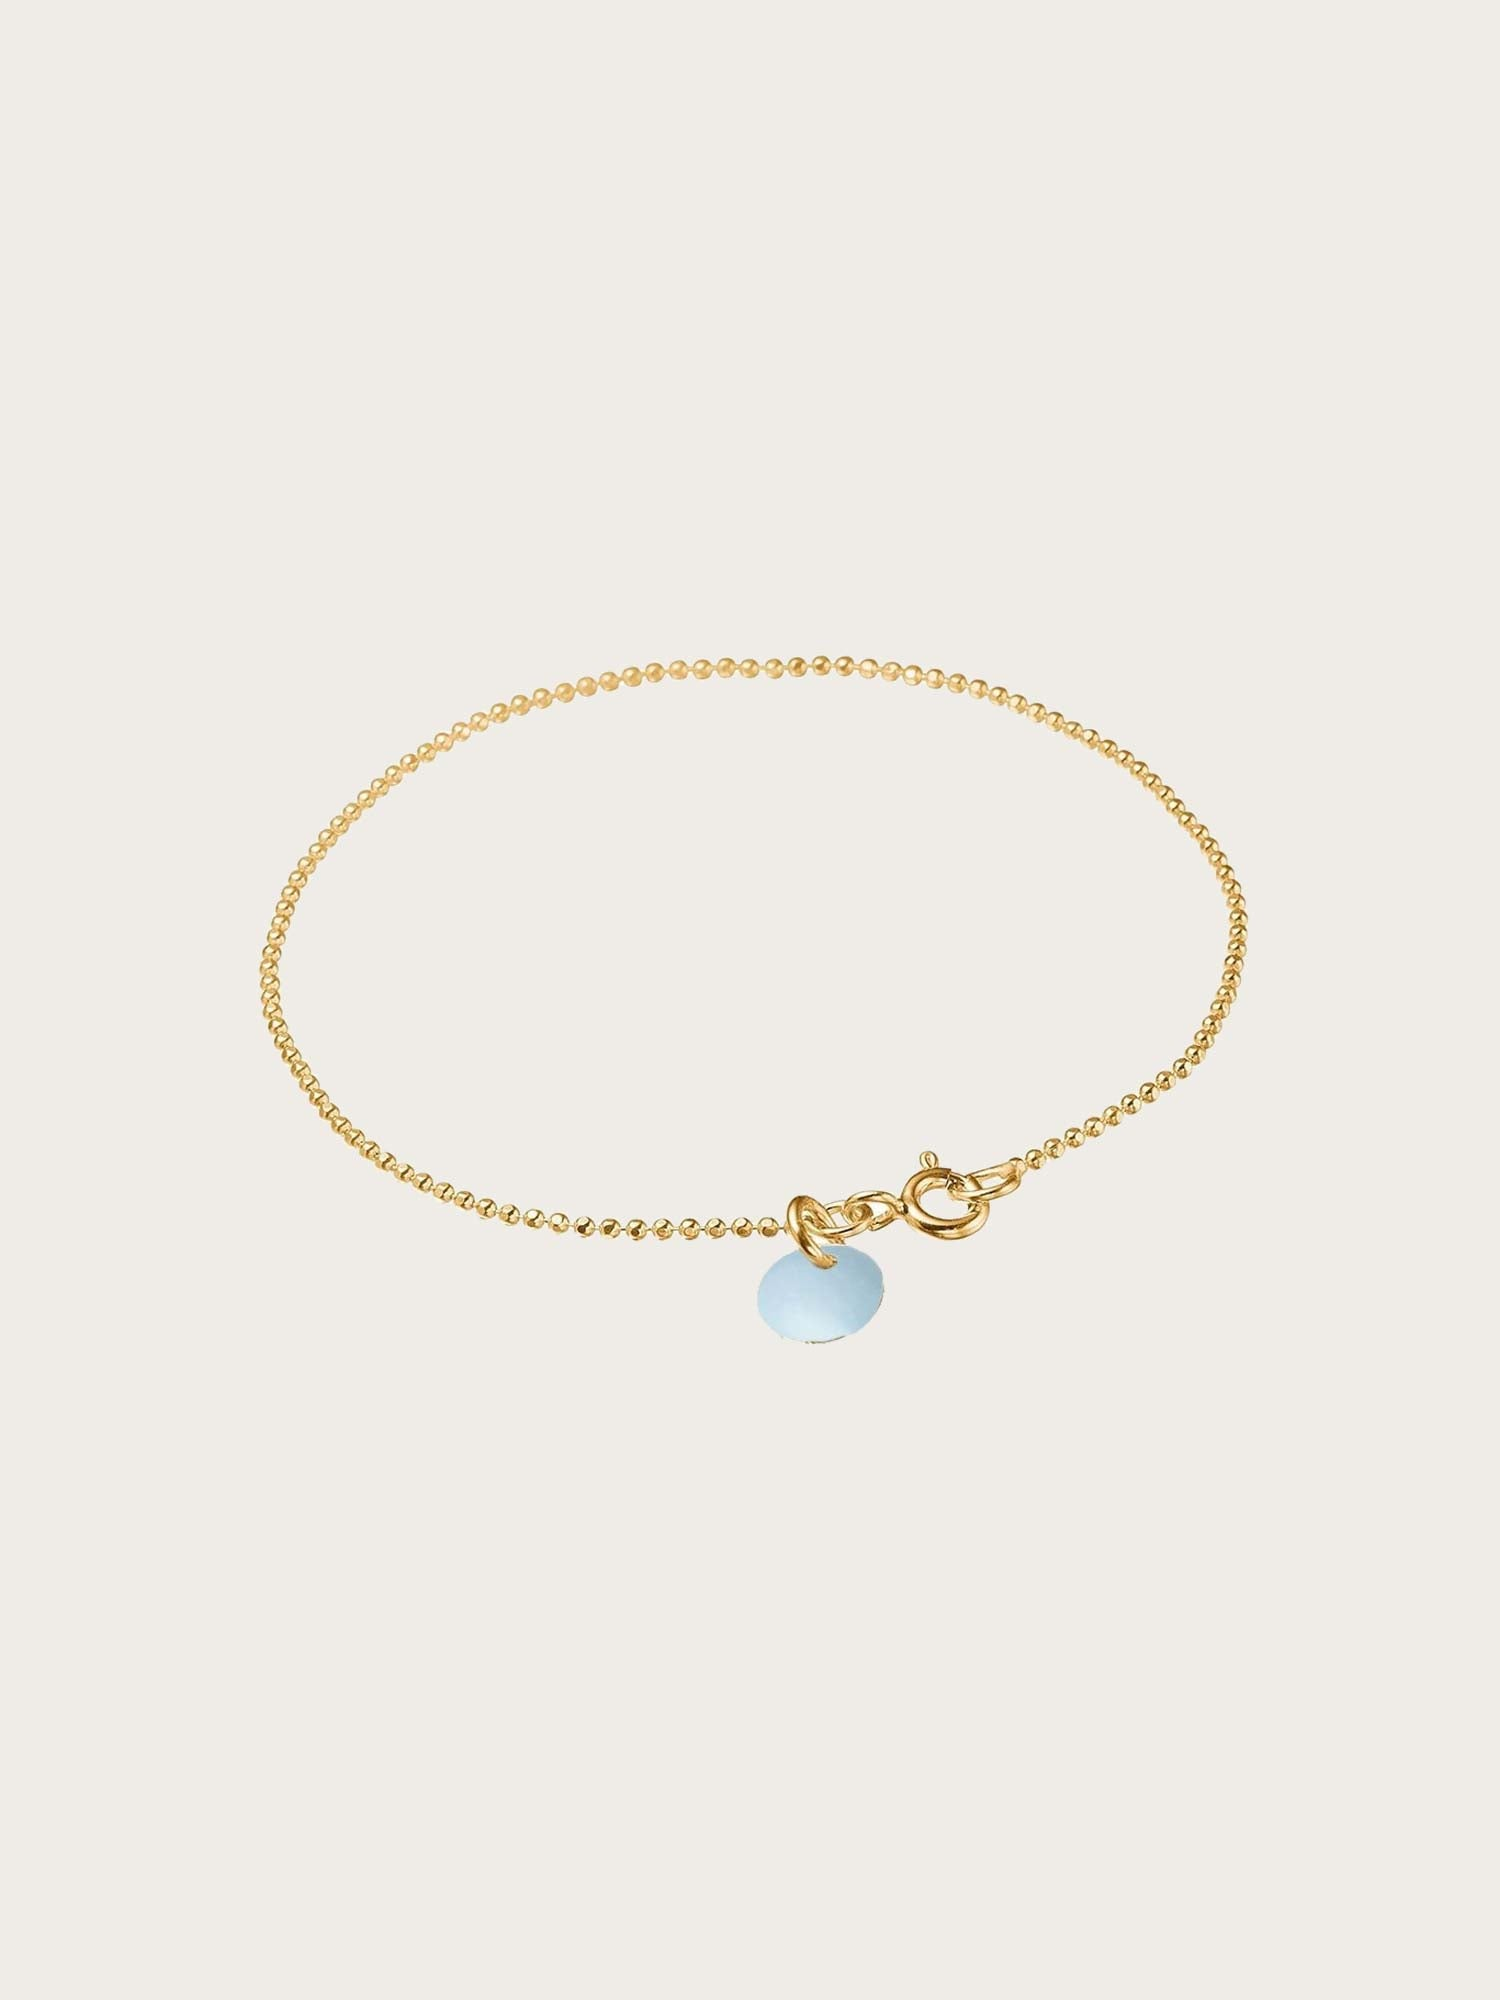 Bracelet Ball Chain Icy Blue